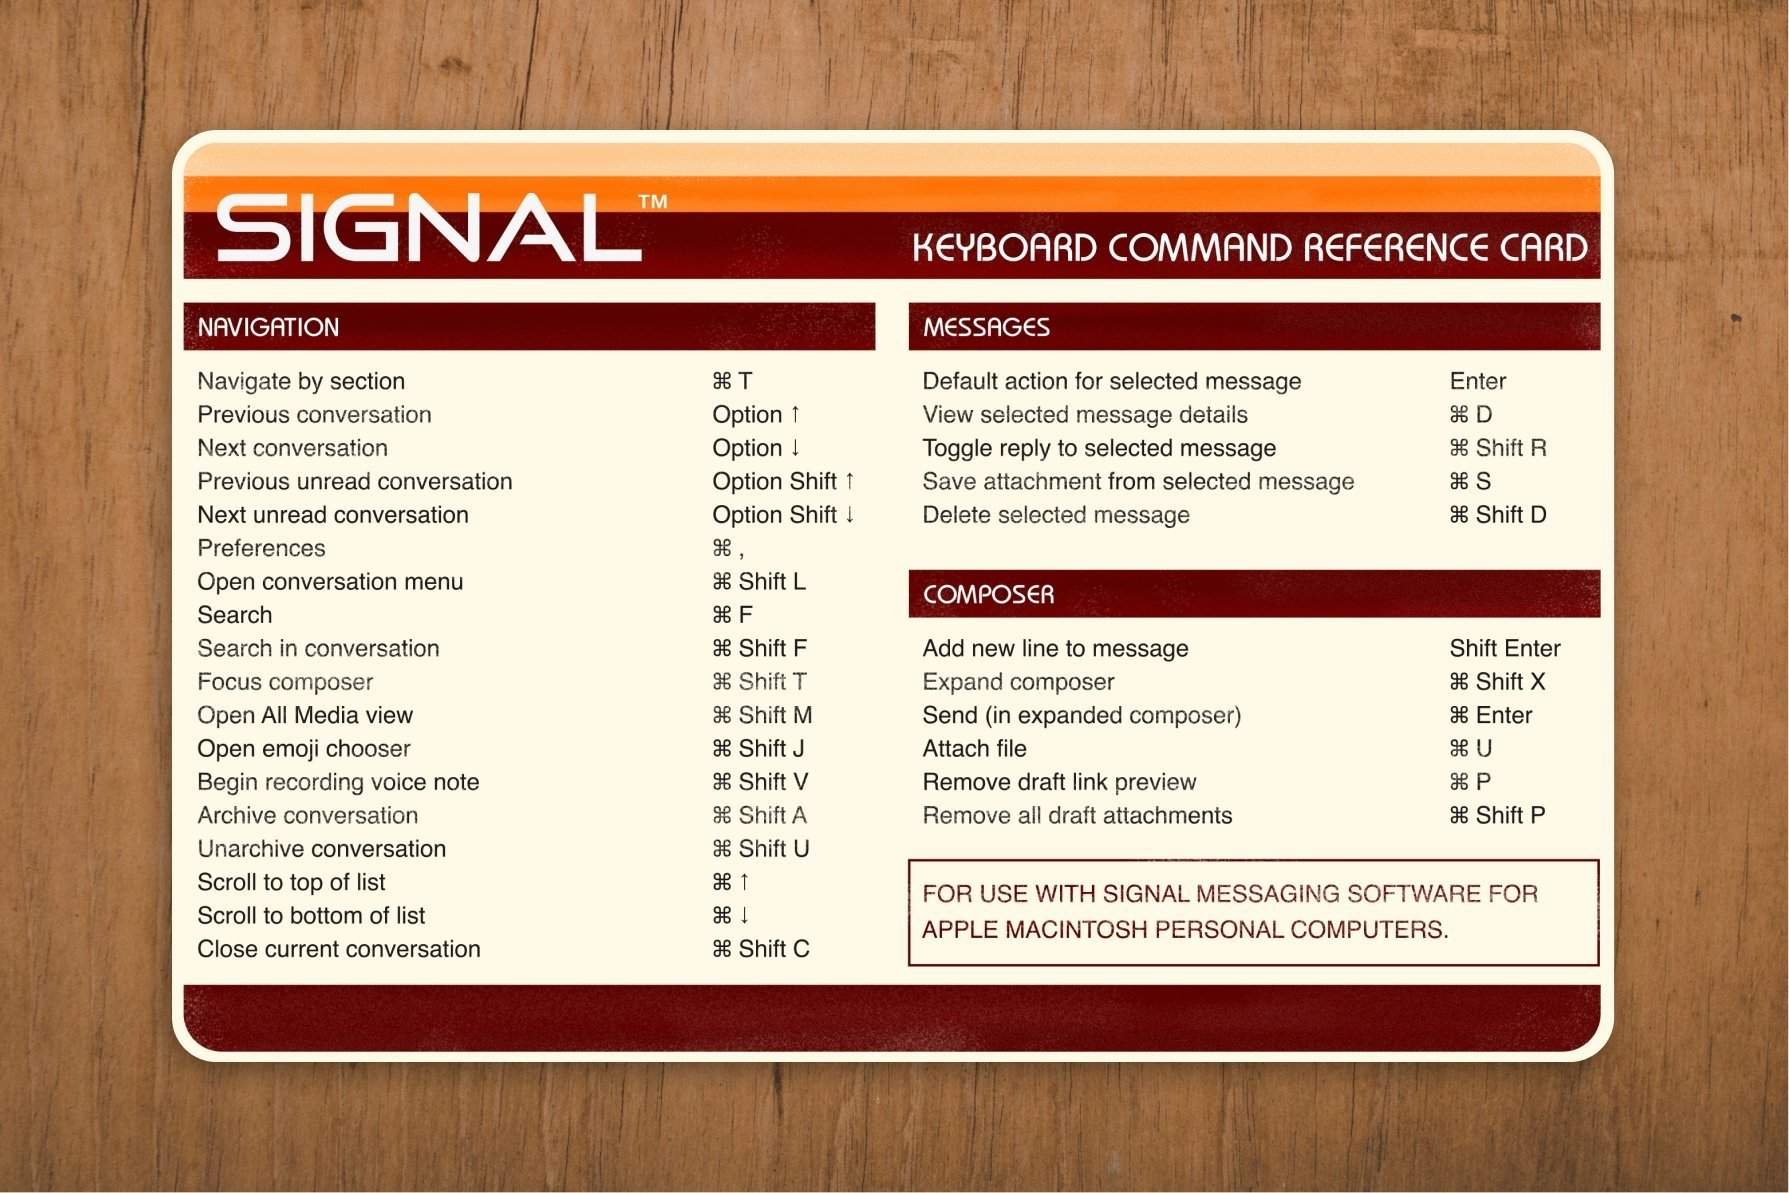 A stylized version of the Signal keyboard shortcuts reference card for macOS.